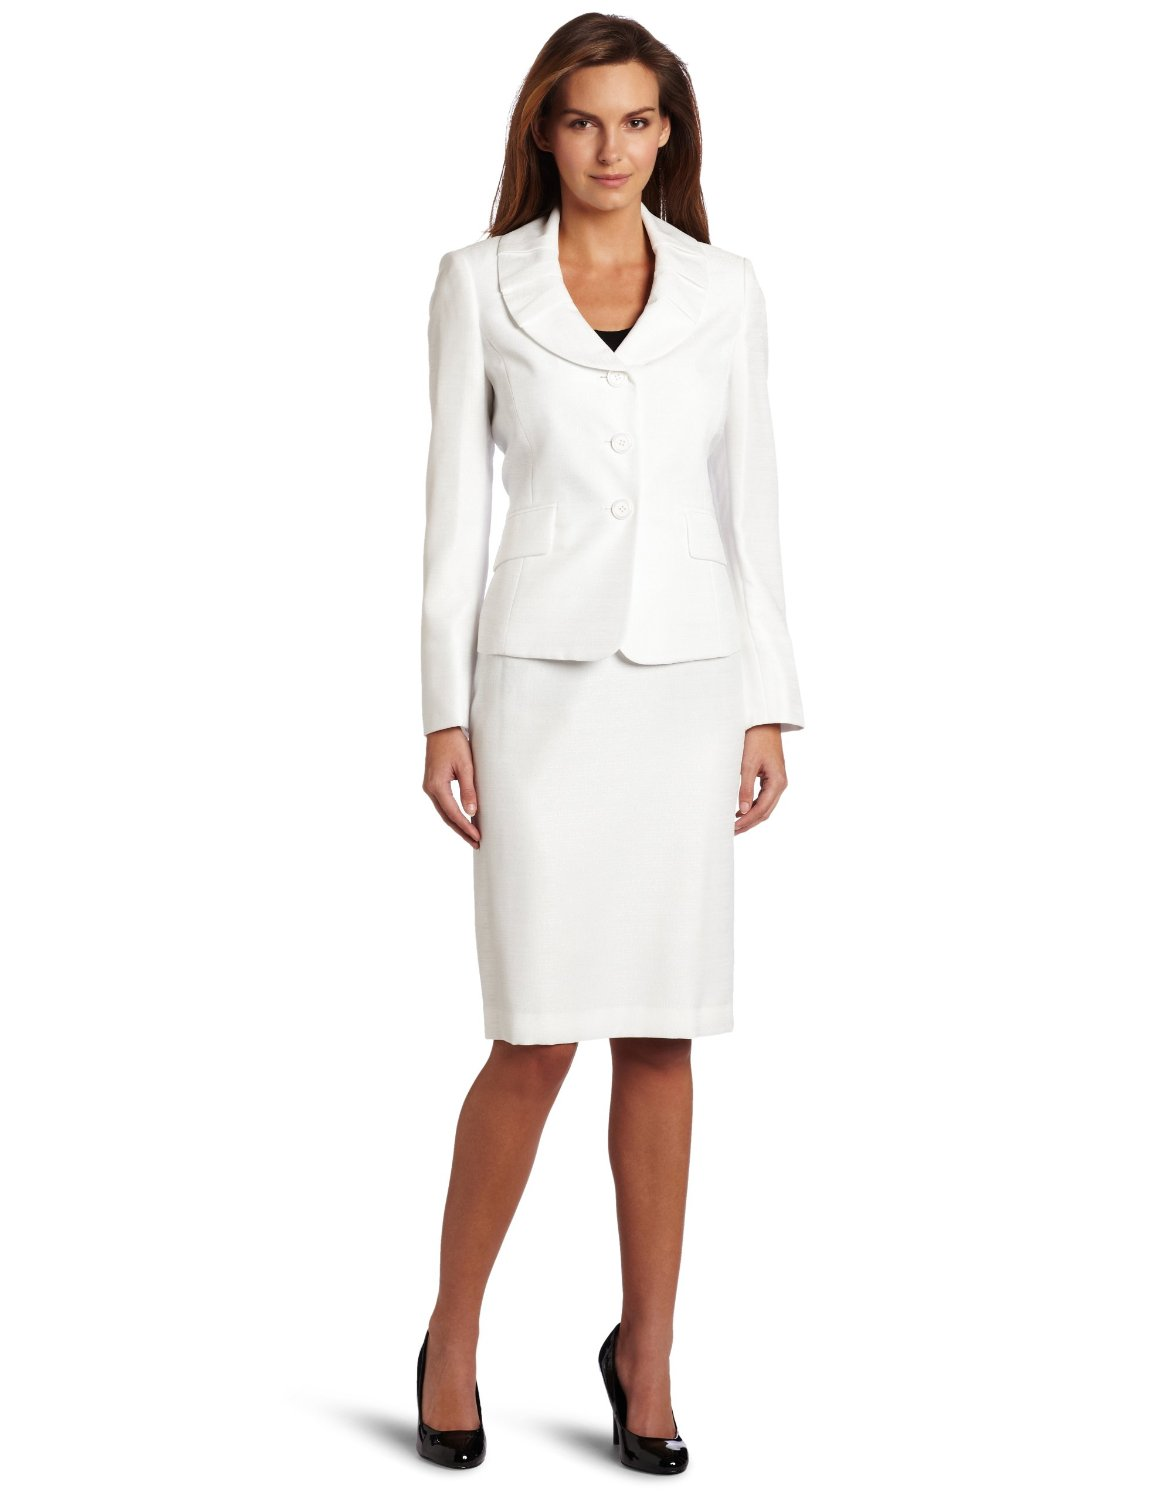 The images featured below are great options for a formal business environment, in which the standard dress code for men and women is a suit, a jacket, and pants or a dress skirt. Wearing clean and pressed attire is just as important in maintaining a business formal image. Also, keep in mind that maintaining a professional image in a formal business environment always includes dressing.